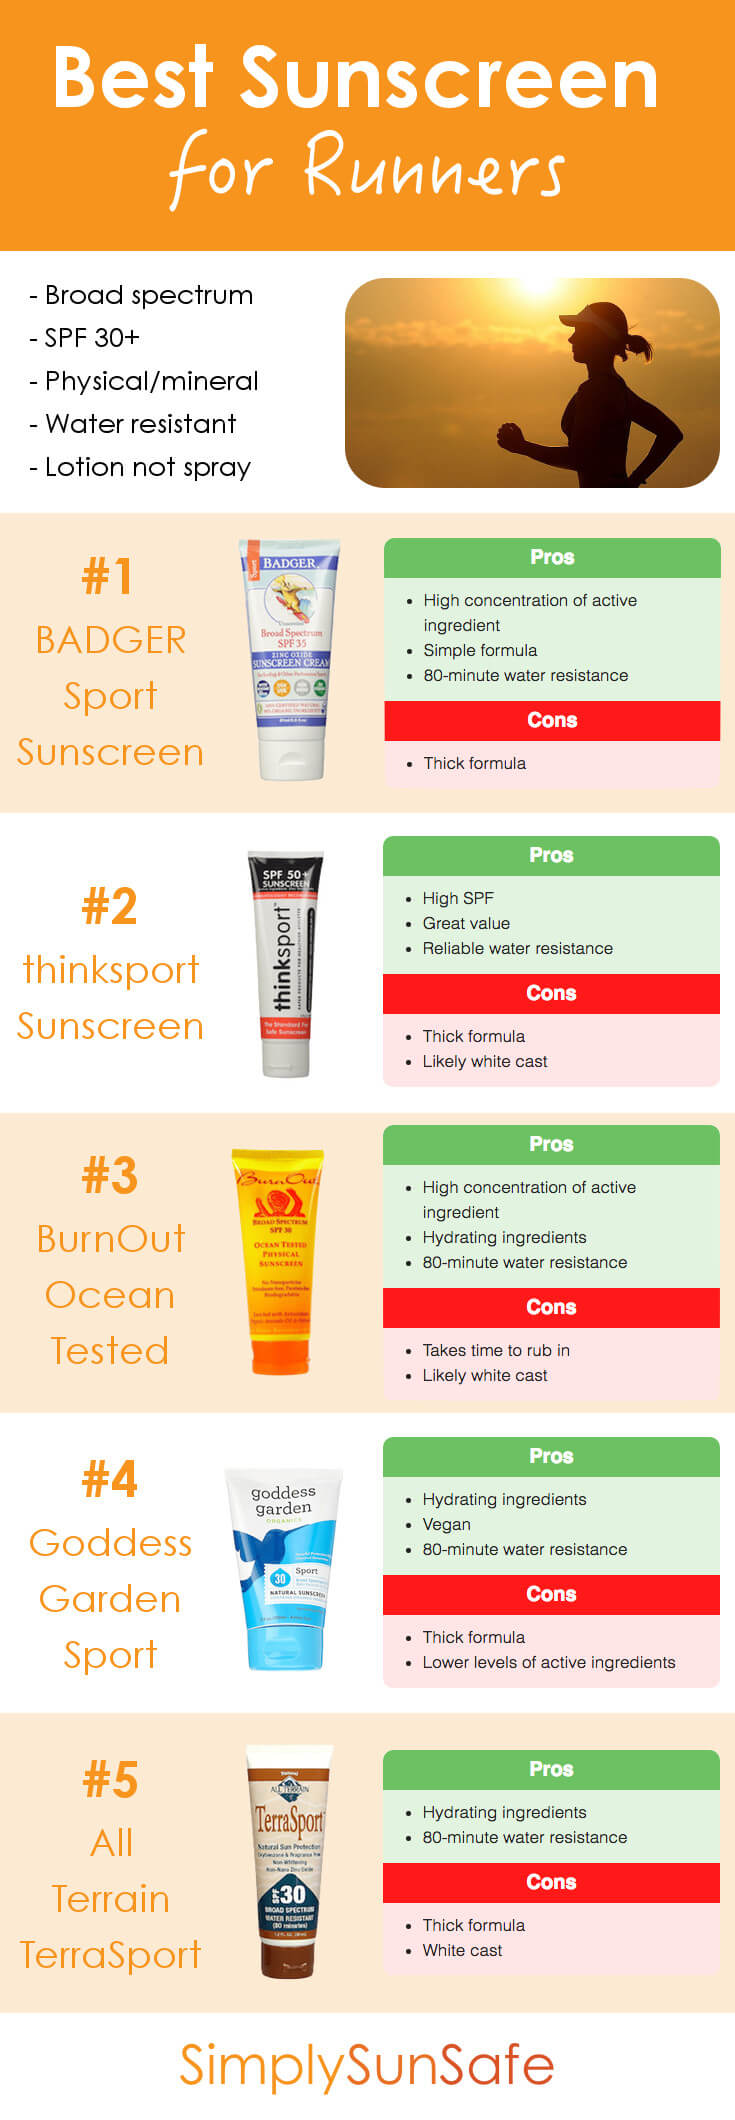 Best Sunscreen for Runners Pinterest